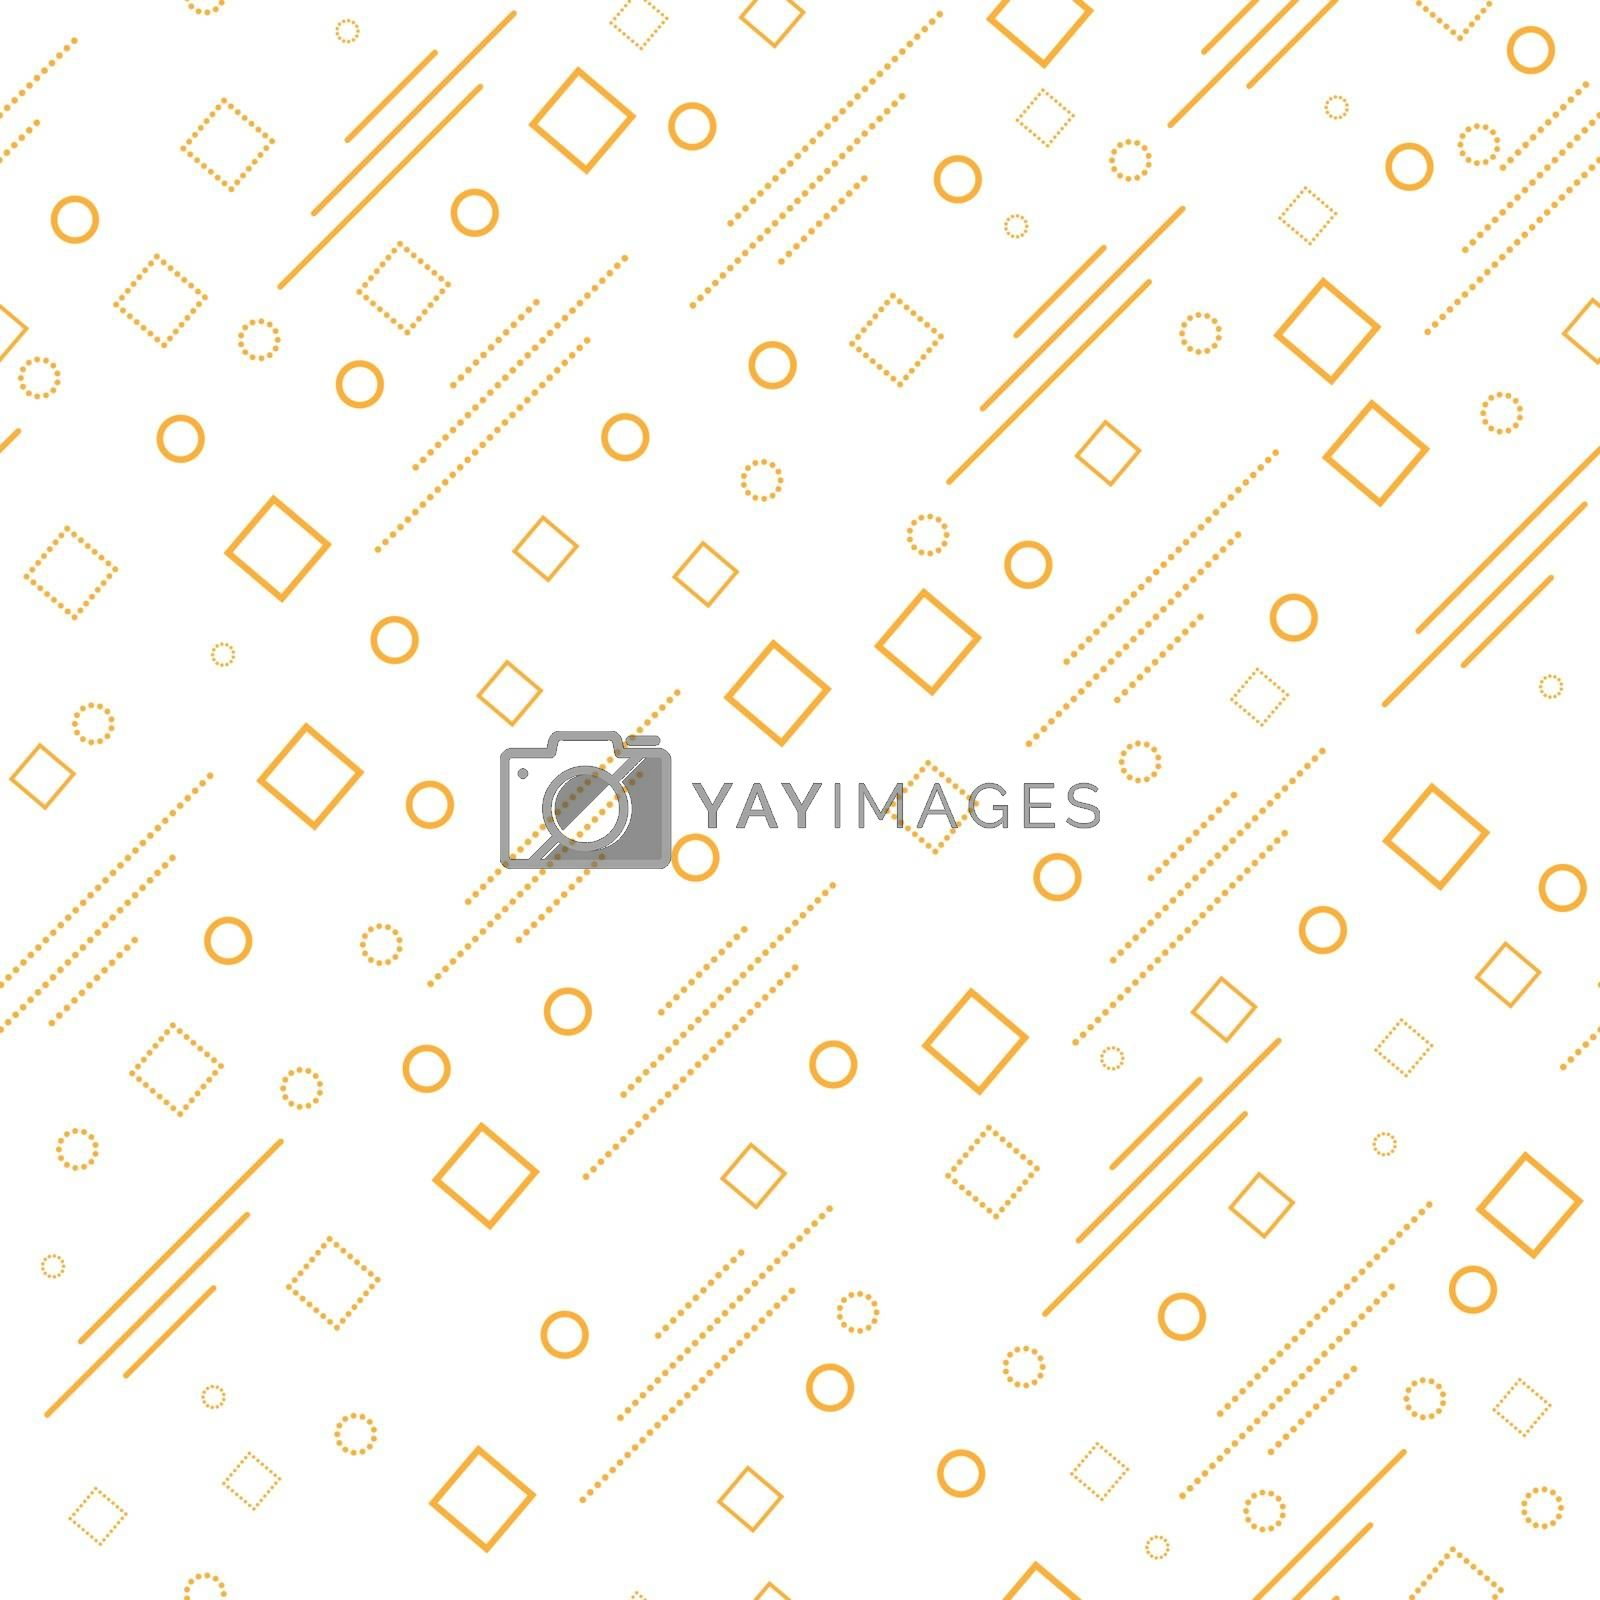 Seamless geometric abstract pattern for simple backgrounds, textures, and packaging. Vector illustration.